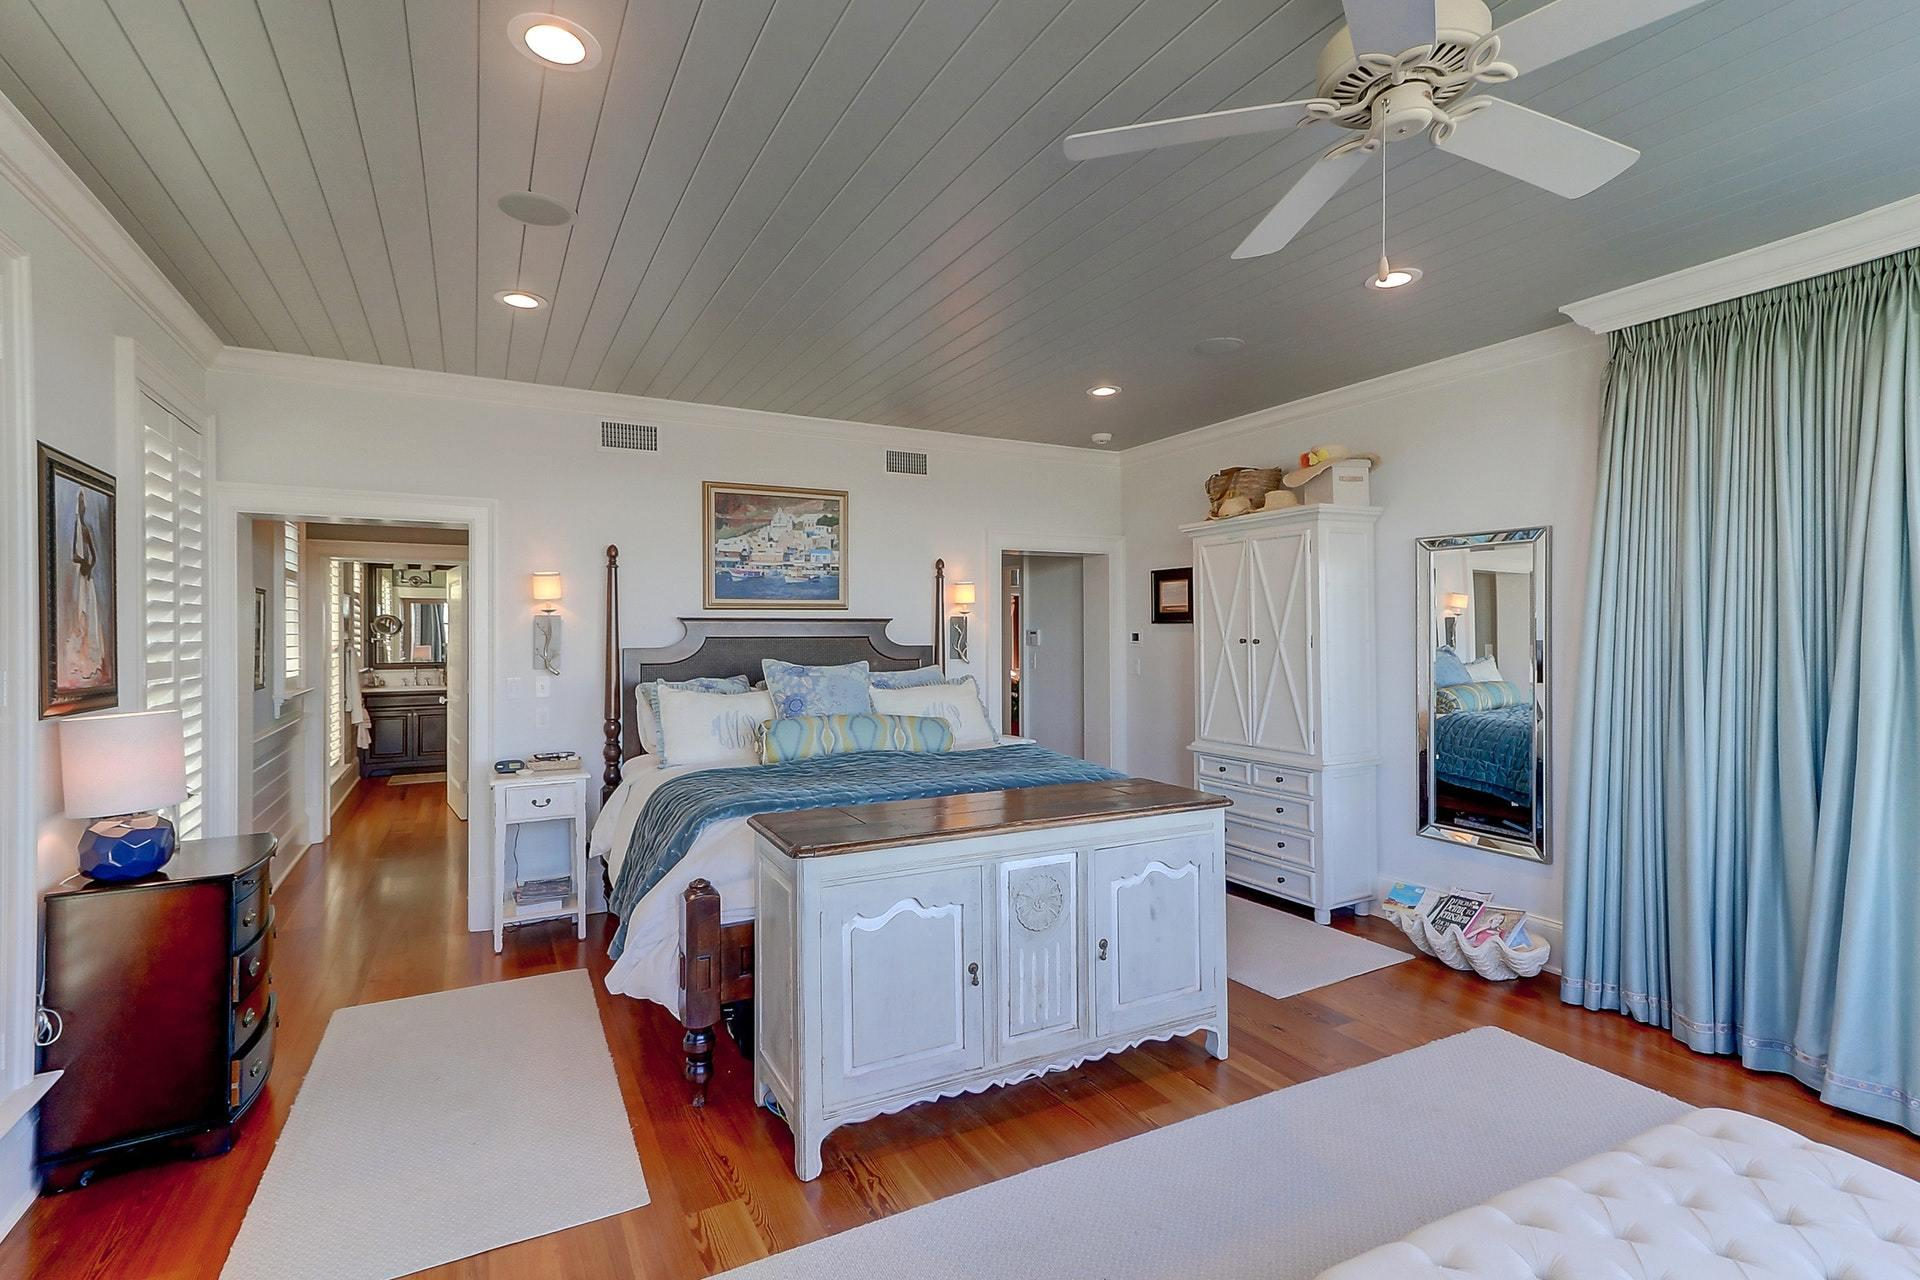 Sullivans Island Homes For Sale - 3030 Jasper, Sullivans Island, SC - 42